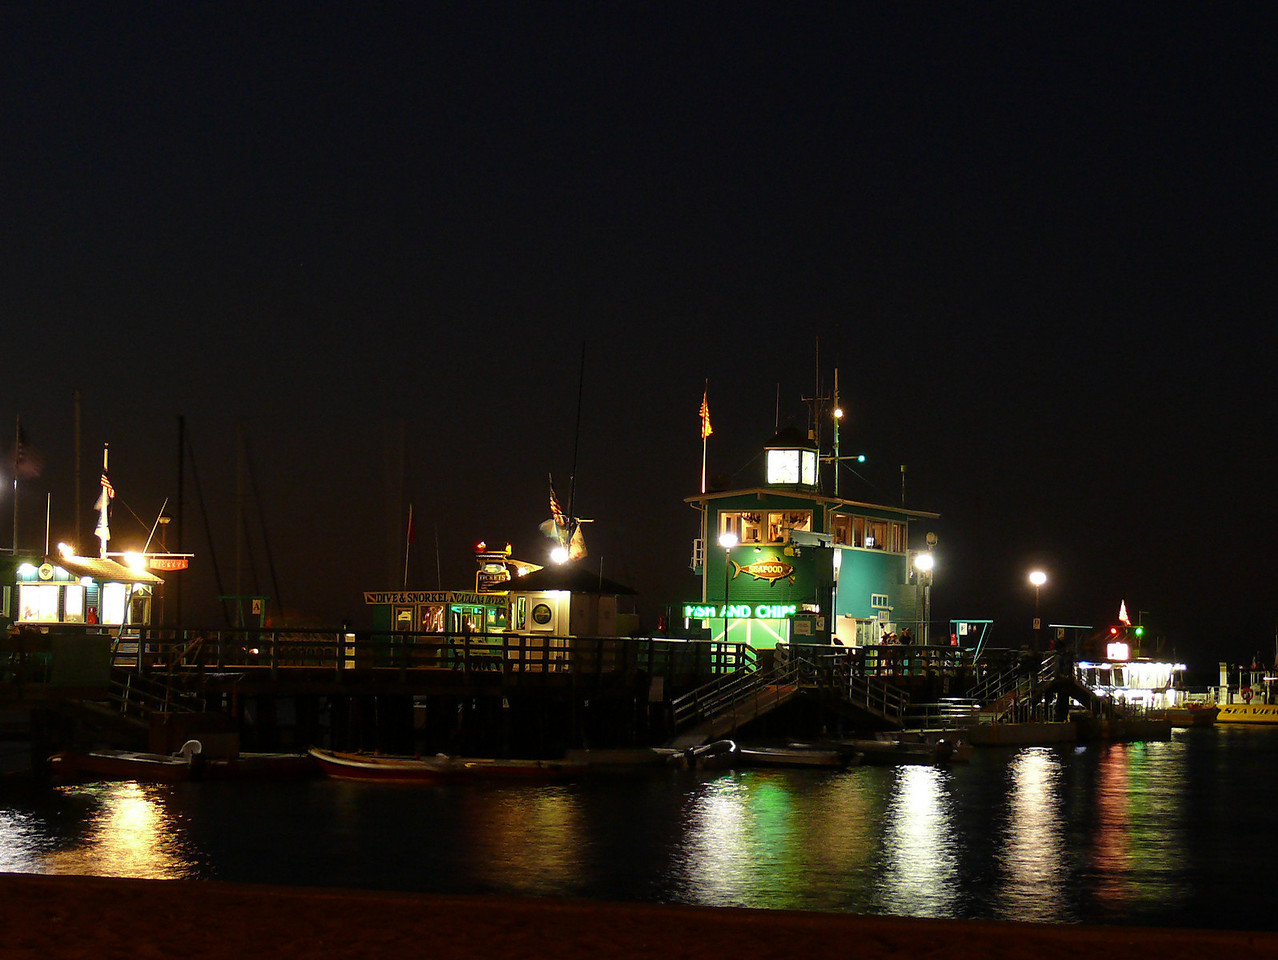 Pier Night Shot